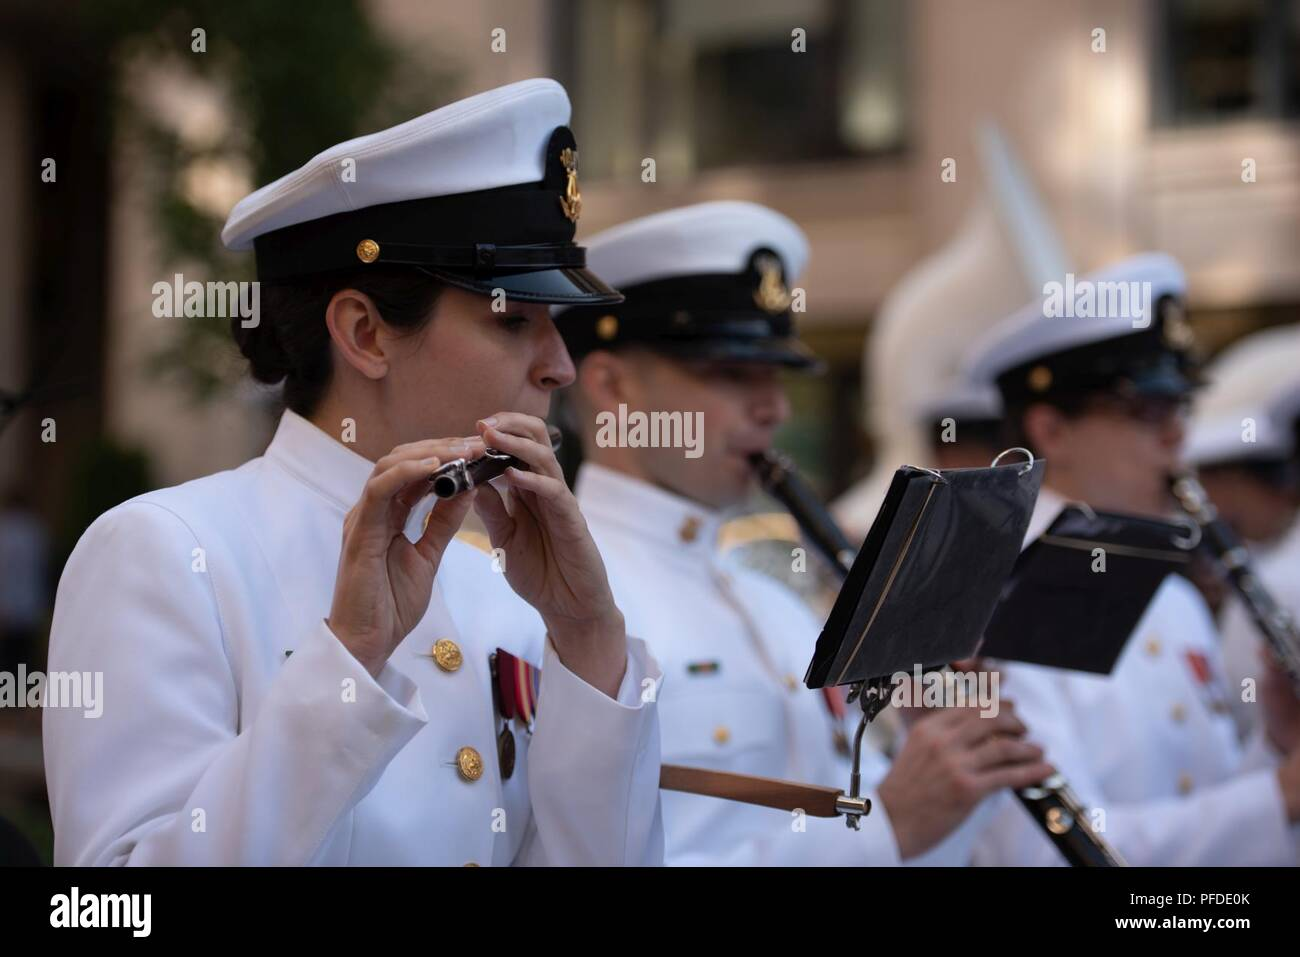 WASHINGTON (June 5, 2018) Musician 1st Class Brittany Foster, piccolo instrumentalist with the U.S. Navy Ceremonial band performs at the U.S. Navy Memorial in Washington, D.C., during the commemoration of the 76th anniversary of the Battle of Midway. The Battle of Midway began on June 4 in 1942 and stands as one of the U.S. Navy's most historically significant naval battles. Fought on the high seas of the Pacific more than half a century ago, this battle altered the course of the war in the Pacific and thereby shaped the outcome of world events. - Stock Image